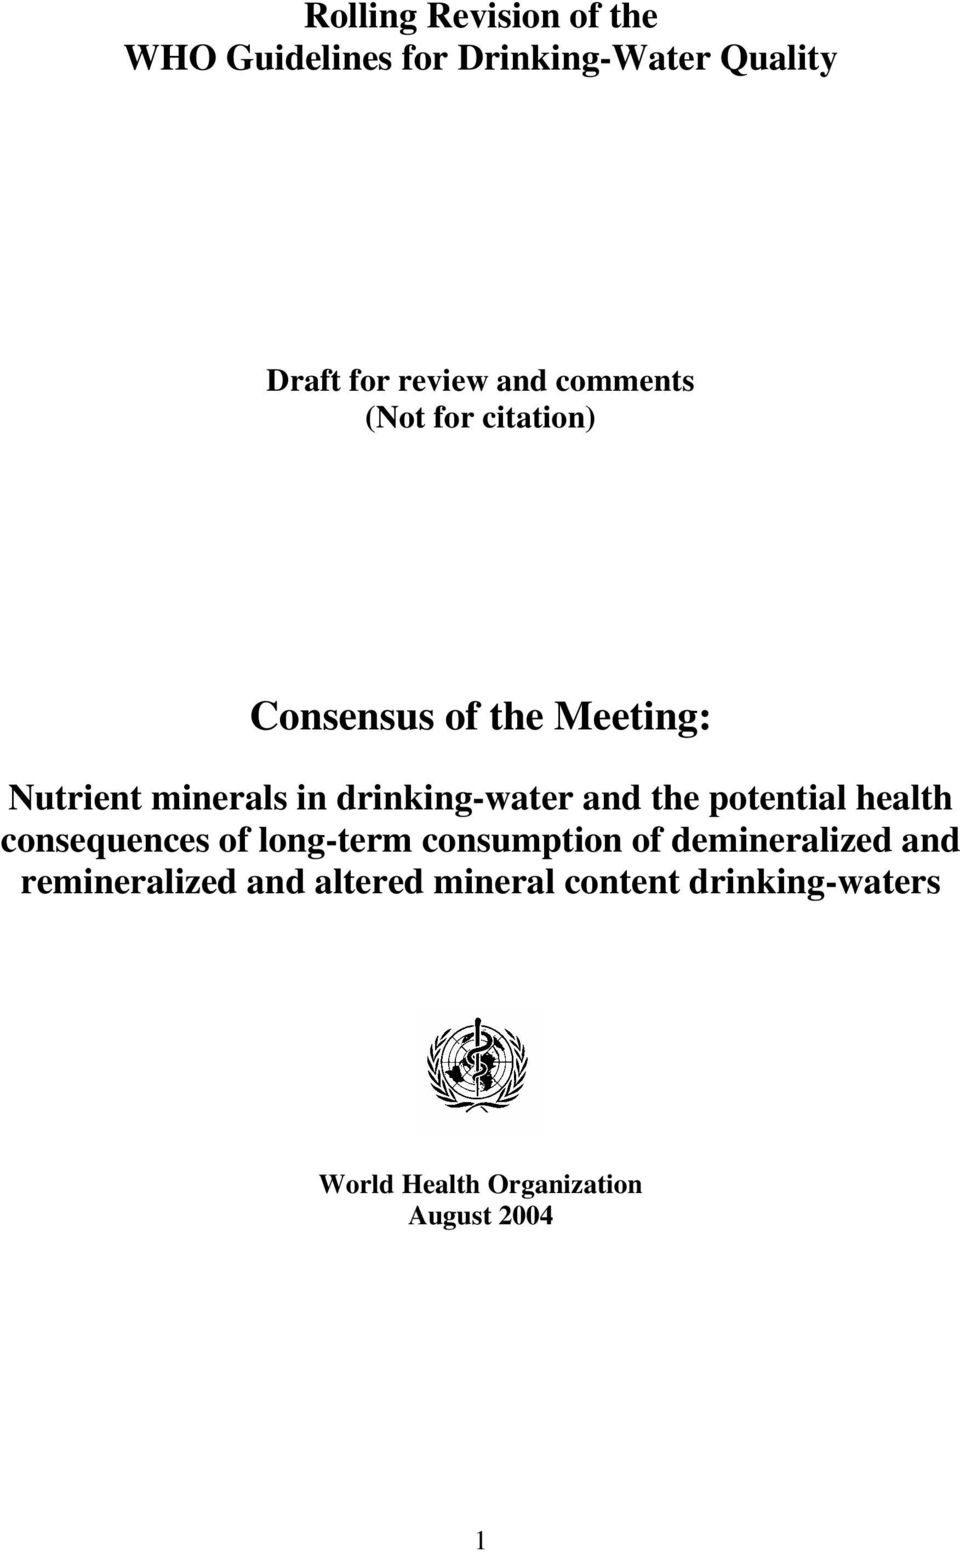 and the potential health consequences of long-term consumption of demineralized and